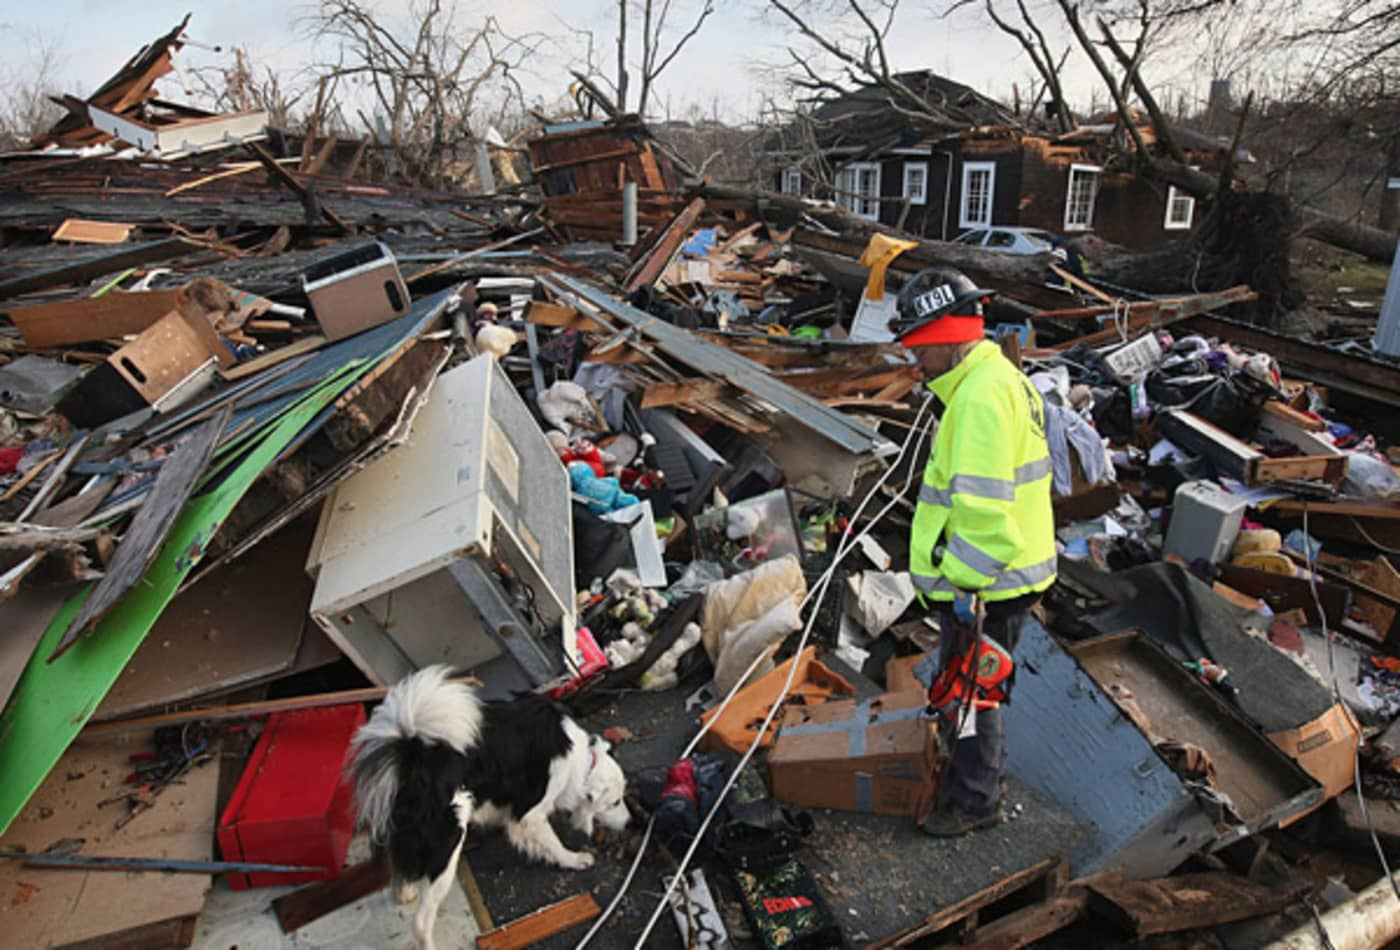 scenes-from-the-midwest-tornadoes-rescue-dog.jpg